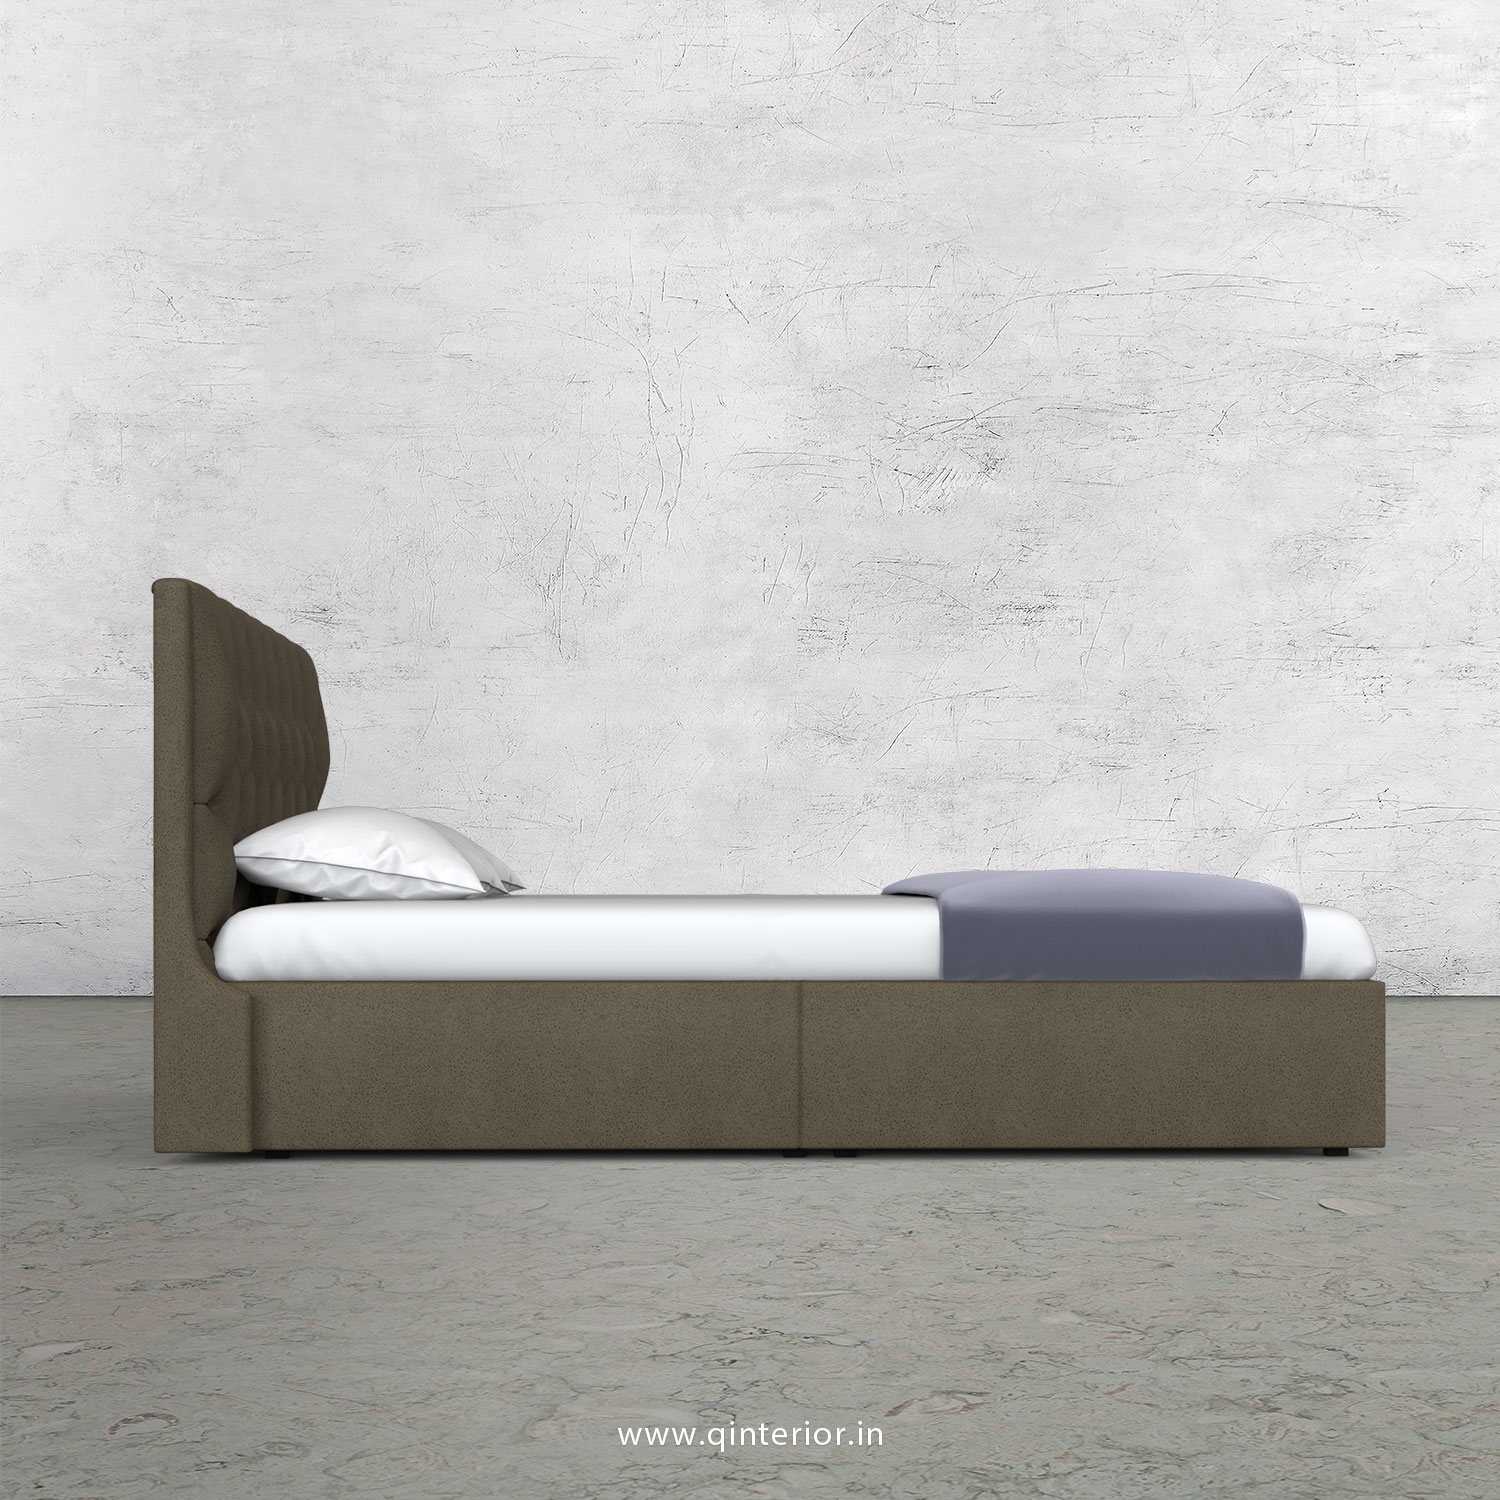 Scorpius King Size Storage Bed in Fab Leather Fabric - KBD001 FL06